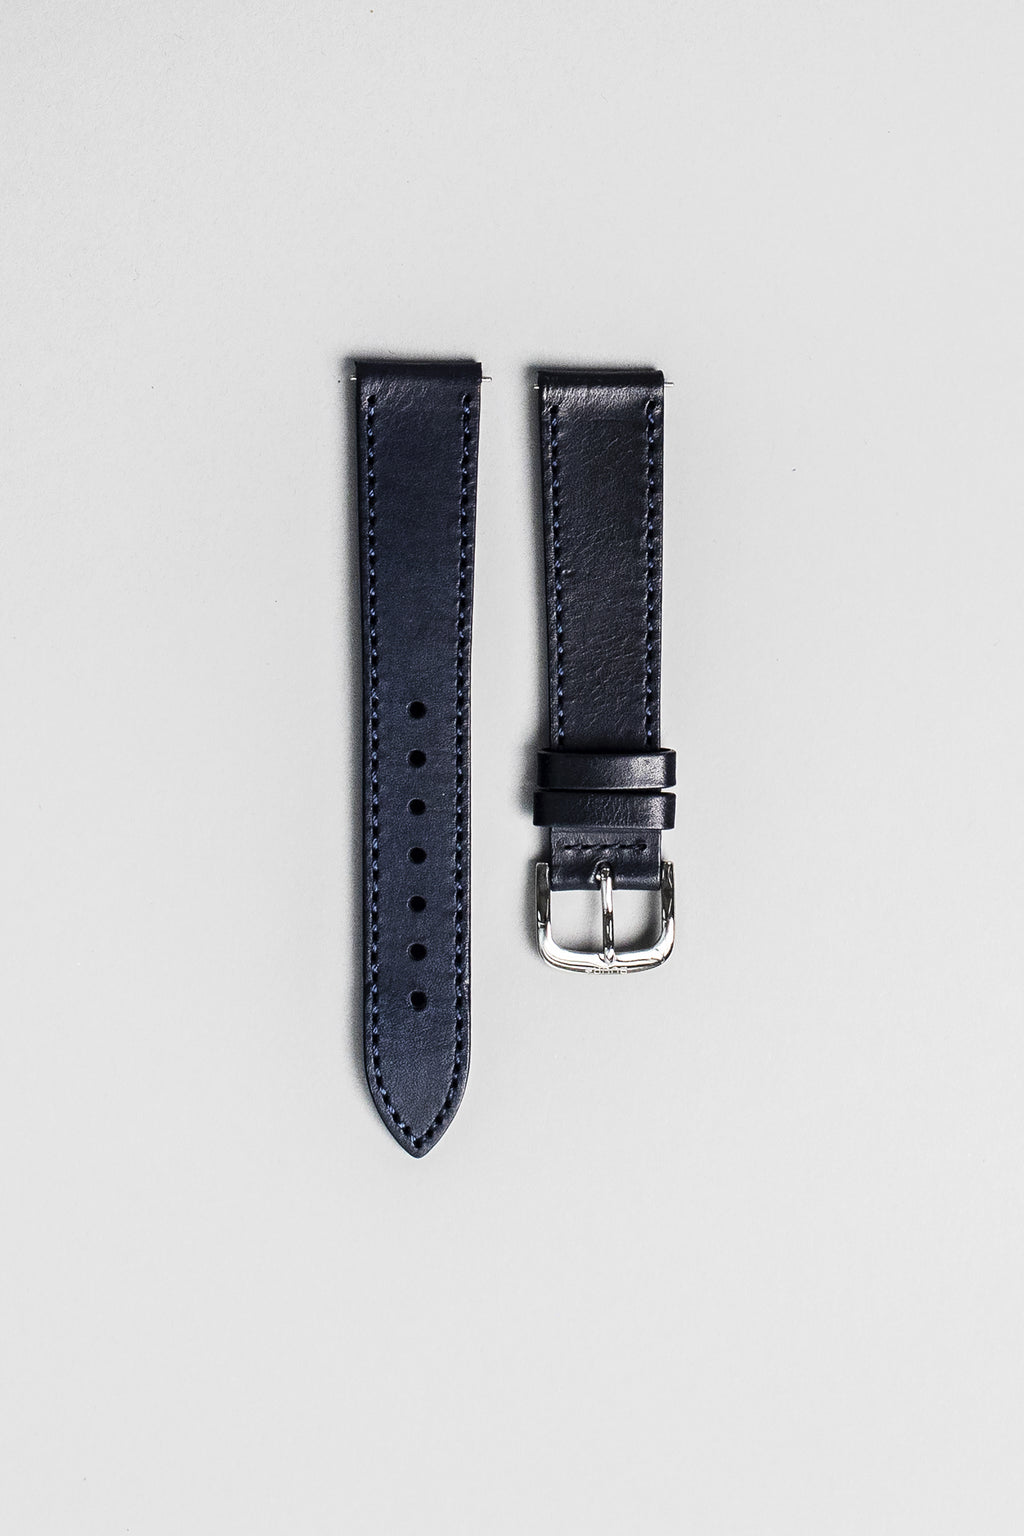 The blue veg tan Italian leather strap with polished buckle. 18mm